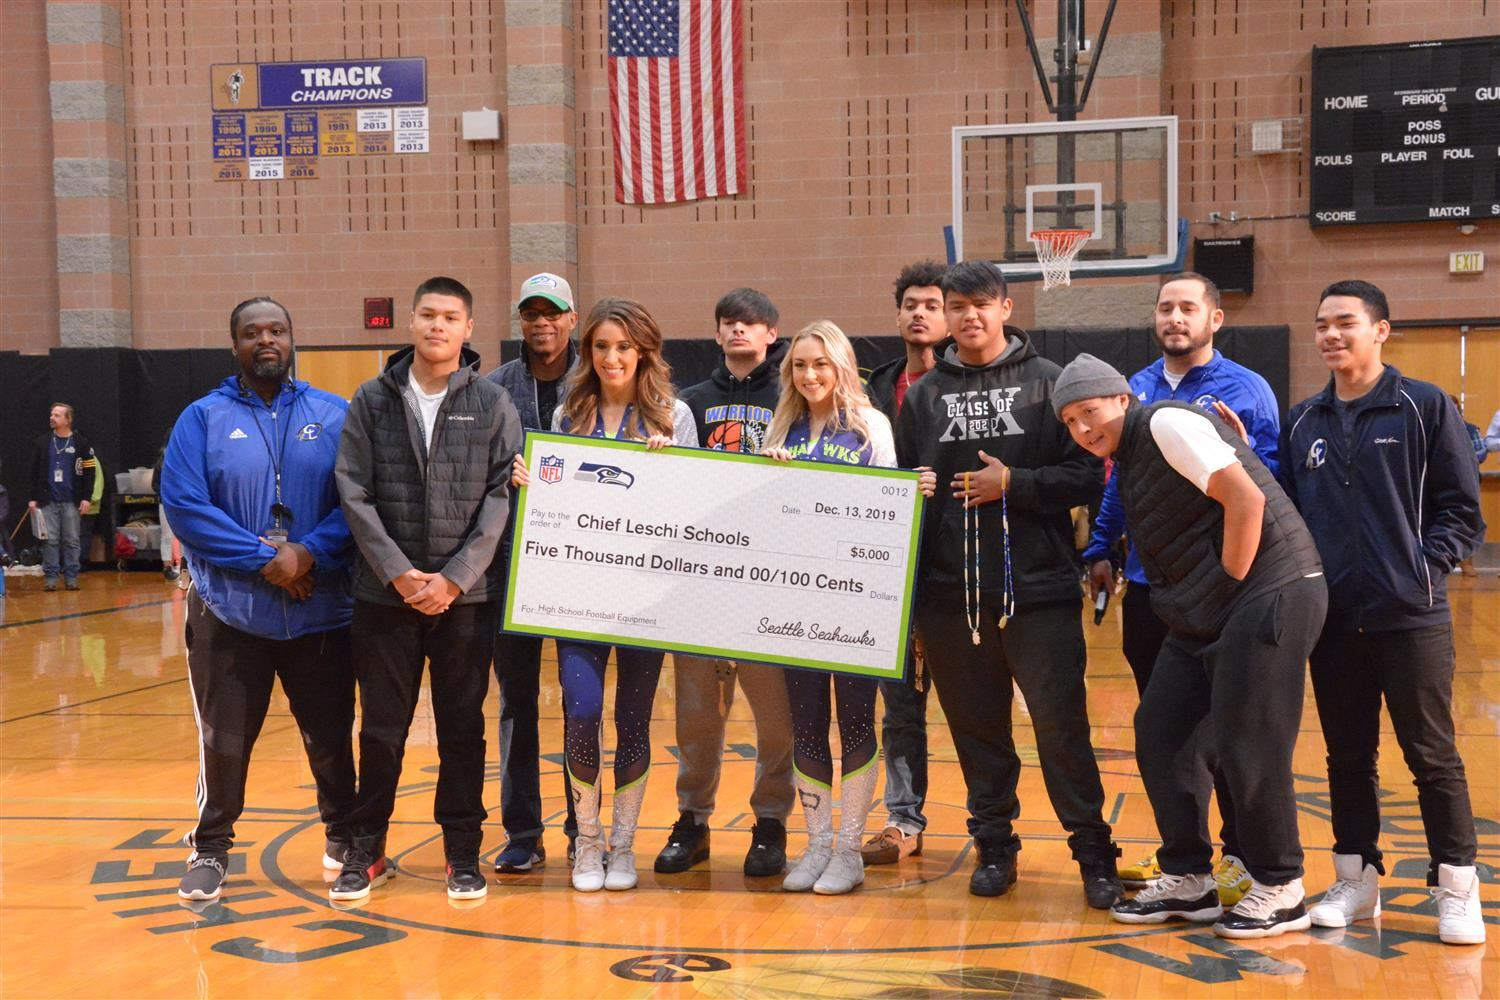 Seattle Seahawks Presents Native American Football Equipment Grant to CLS